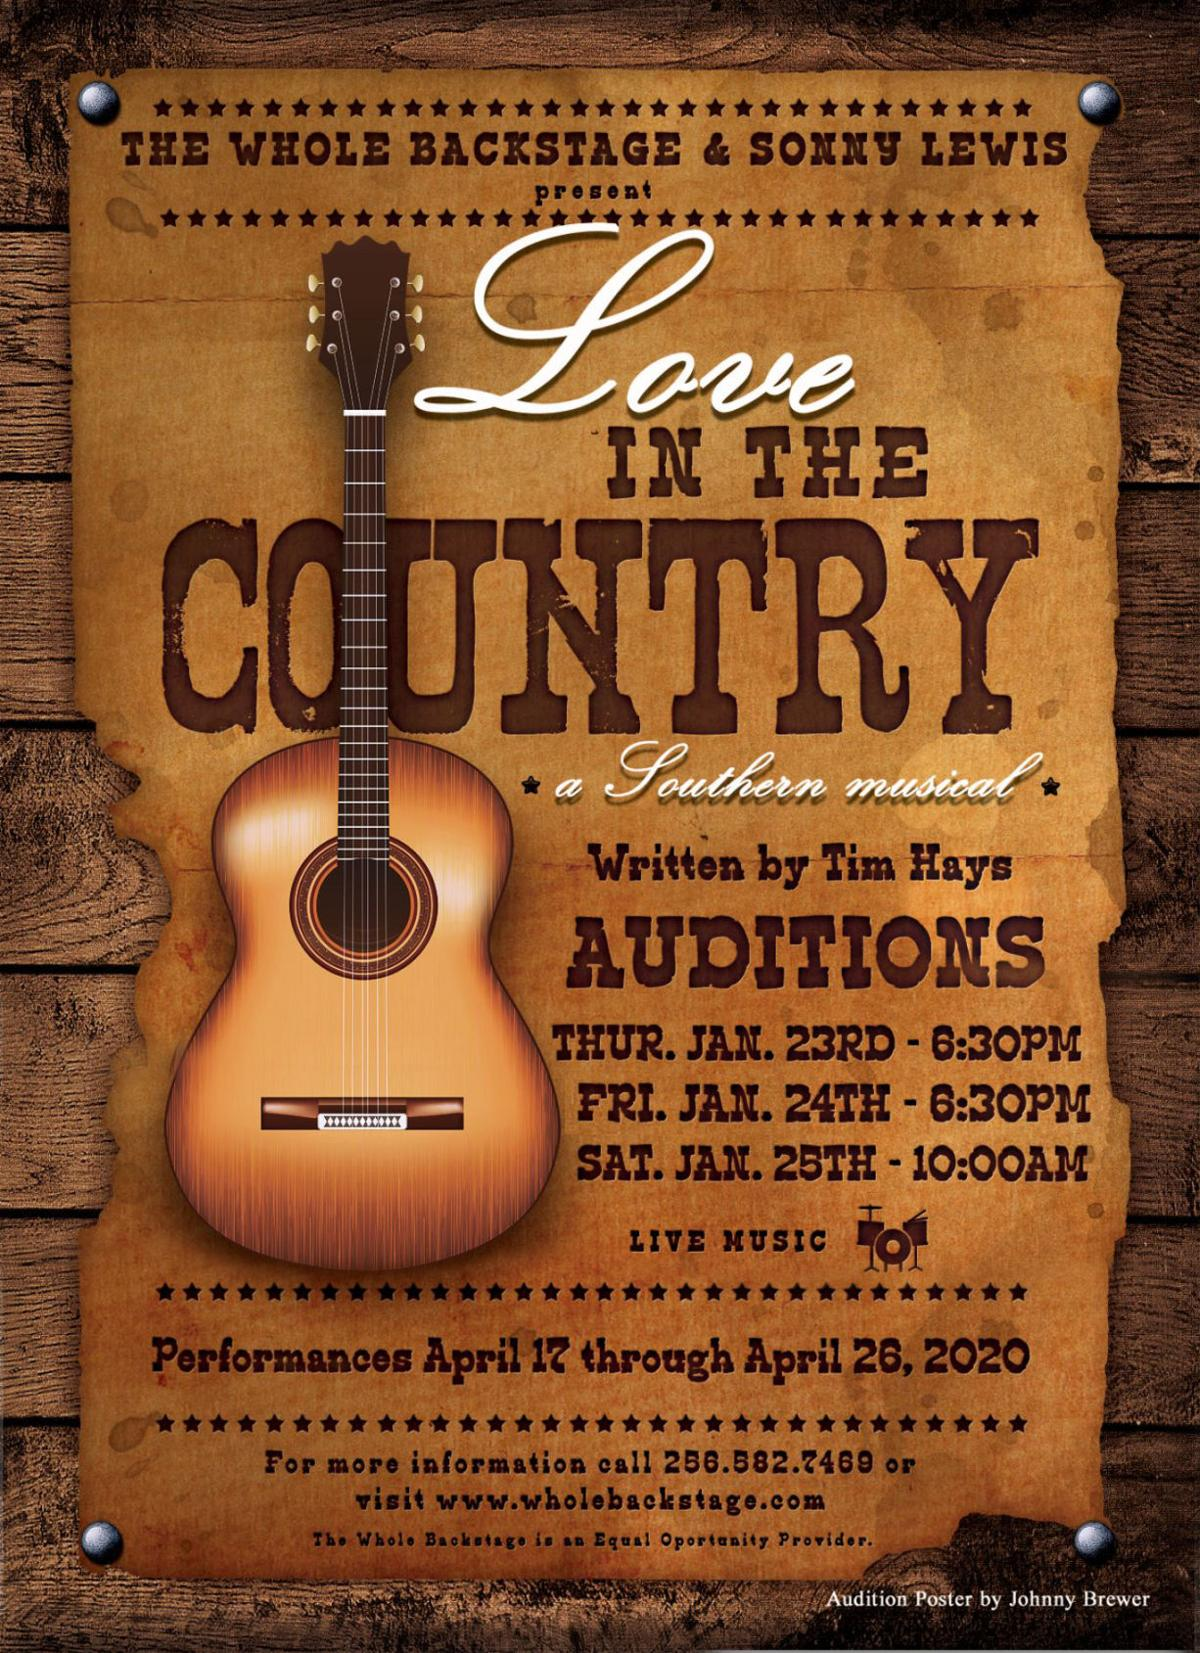 Love in the Country auditions WBS.jpg